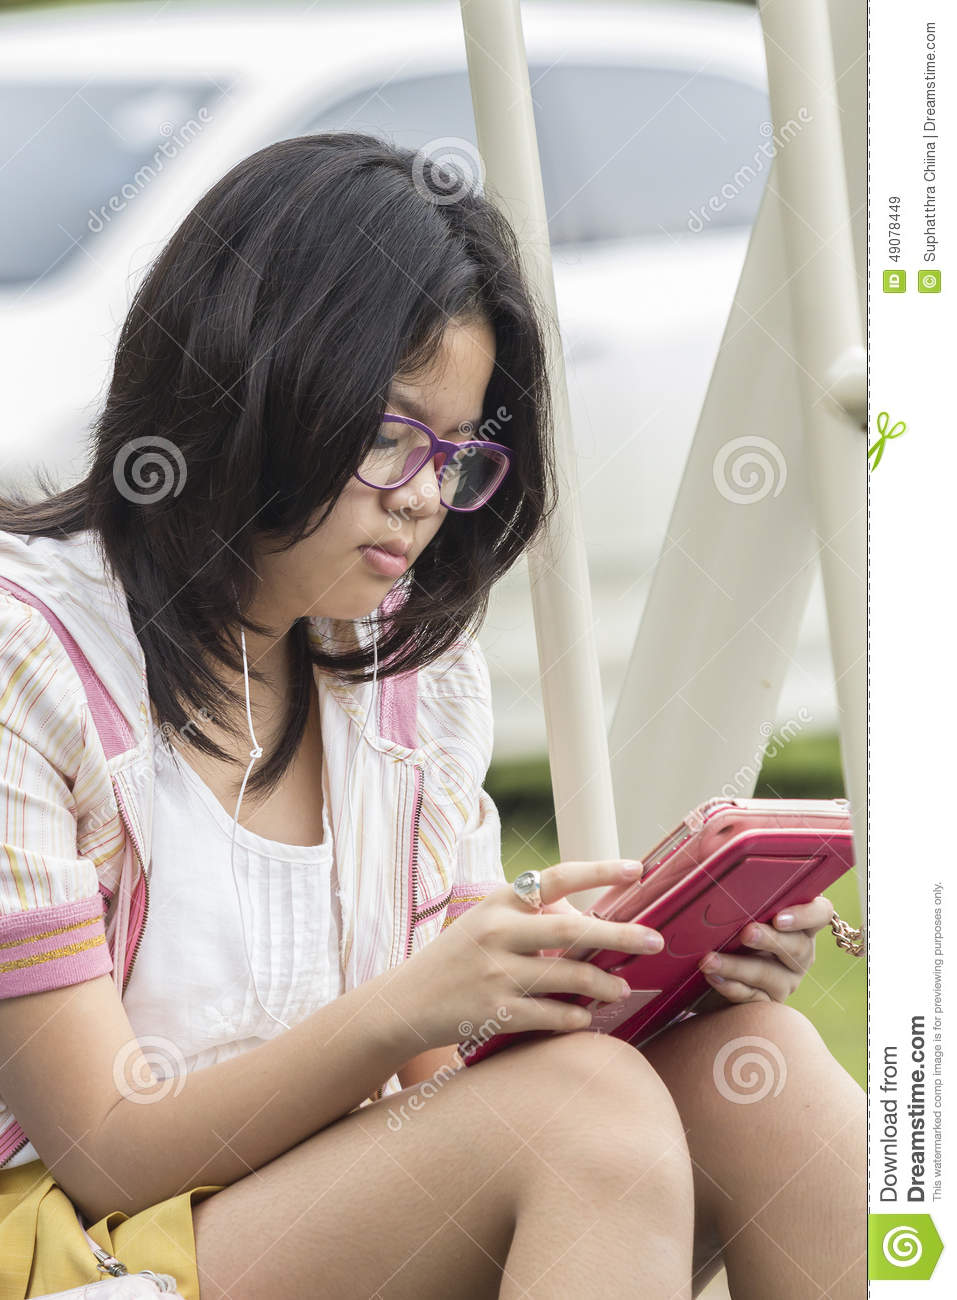 Thai Girl Relaxing With Digital Tablet Stock Photo